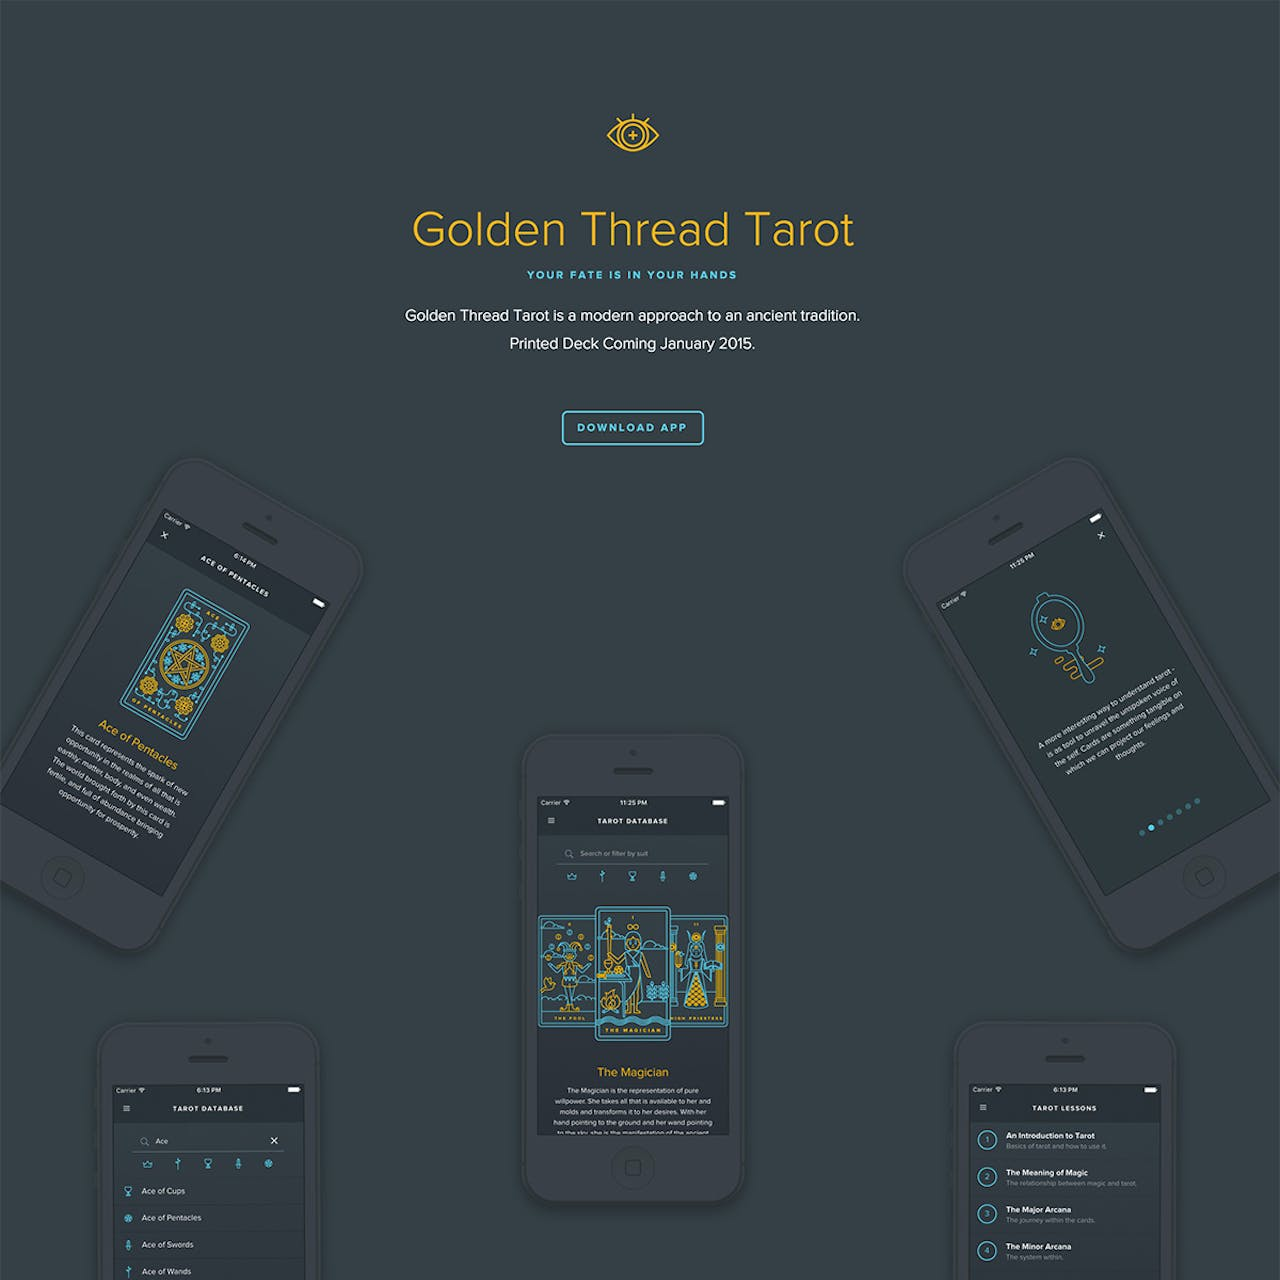 Golden Thread Tarot Website Screenshot